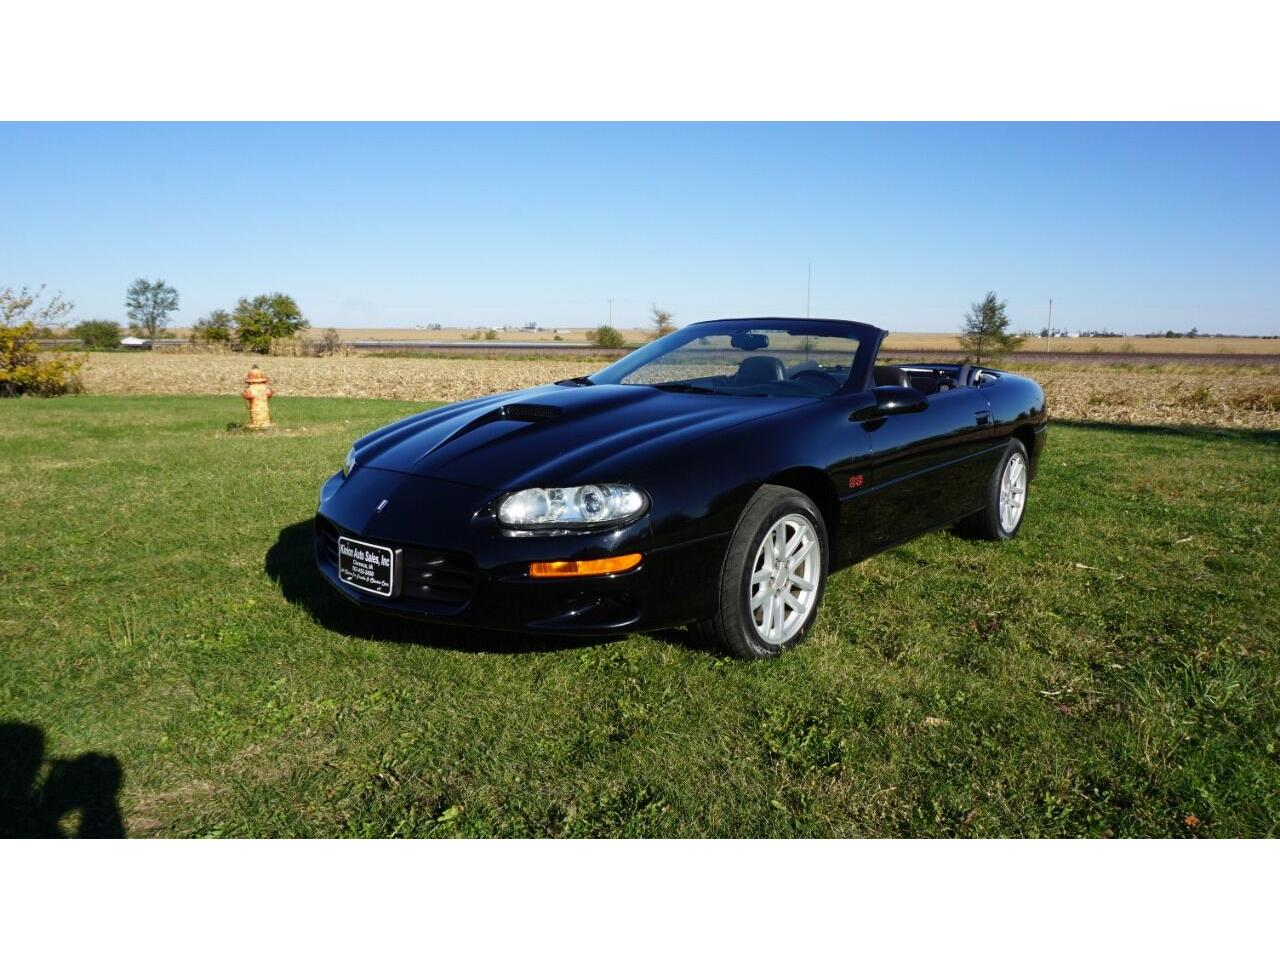 2001 Chevrolet Camaro (CC-1421372) for sale in Clarence, Iowa